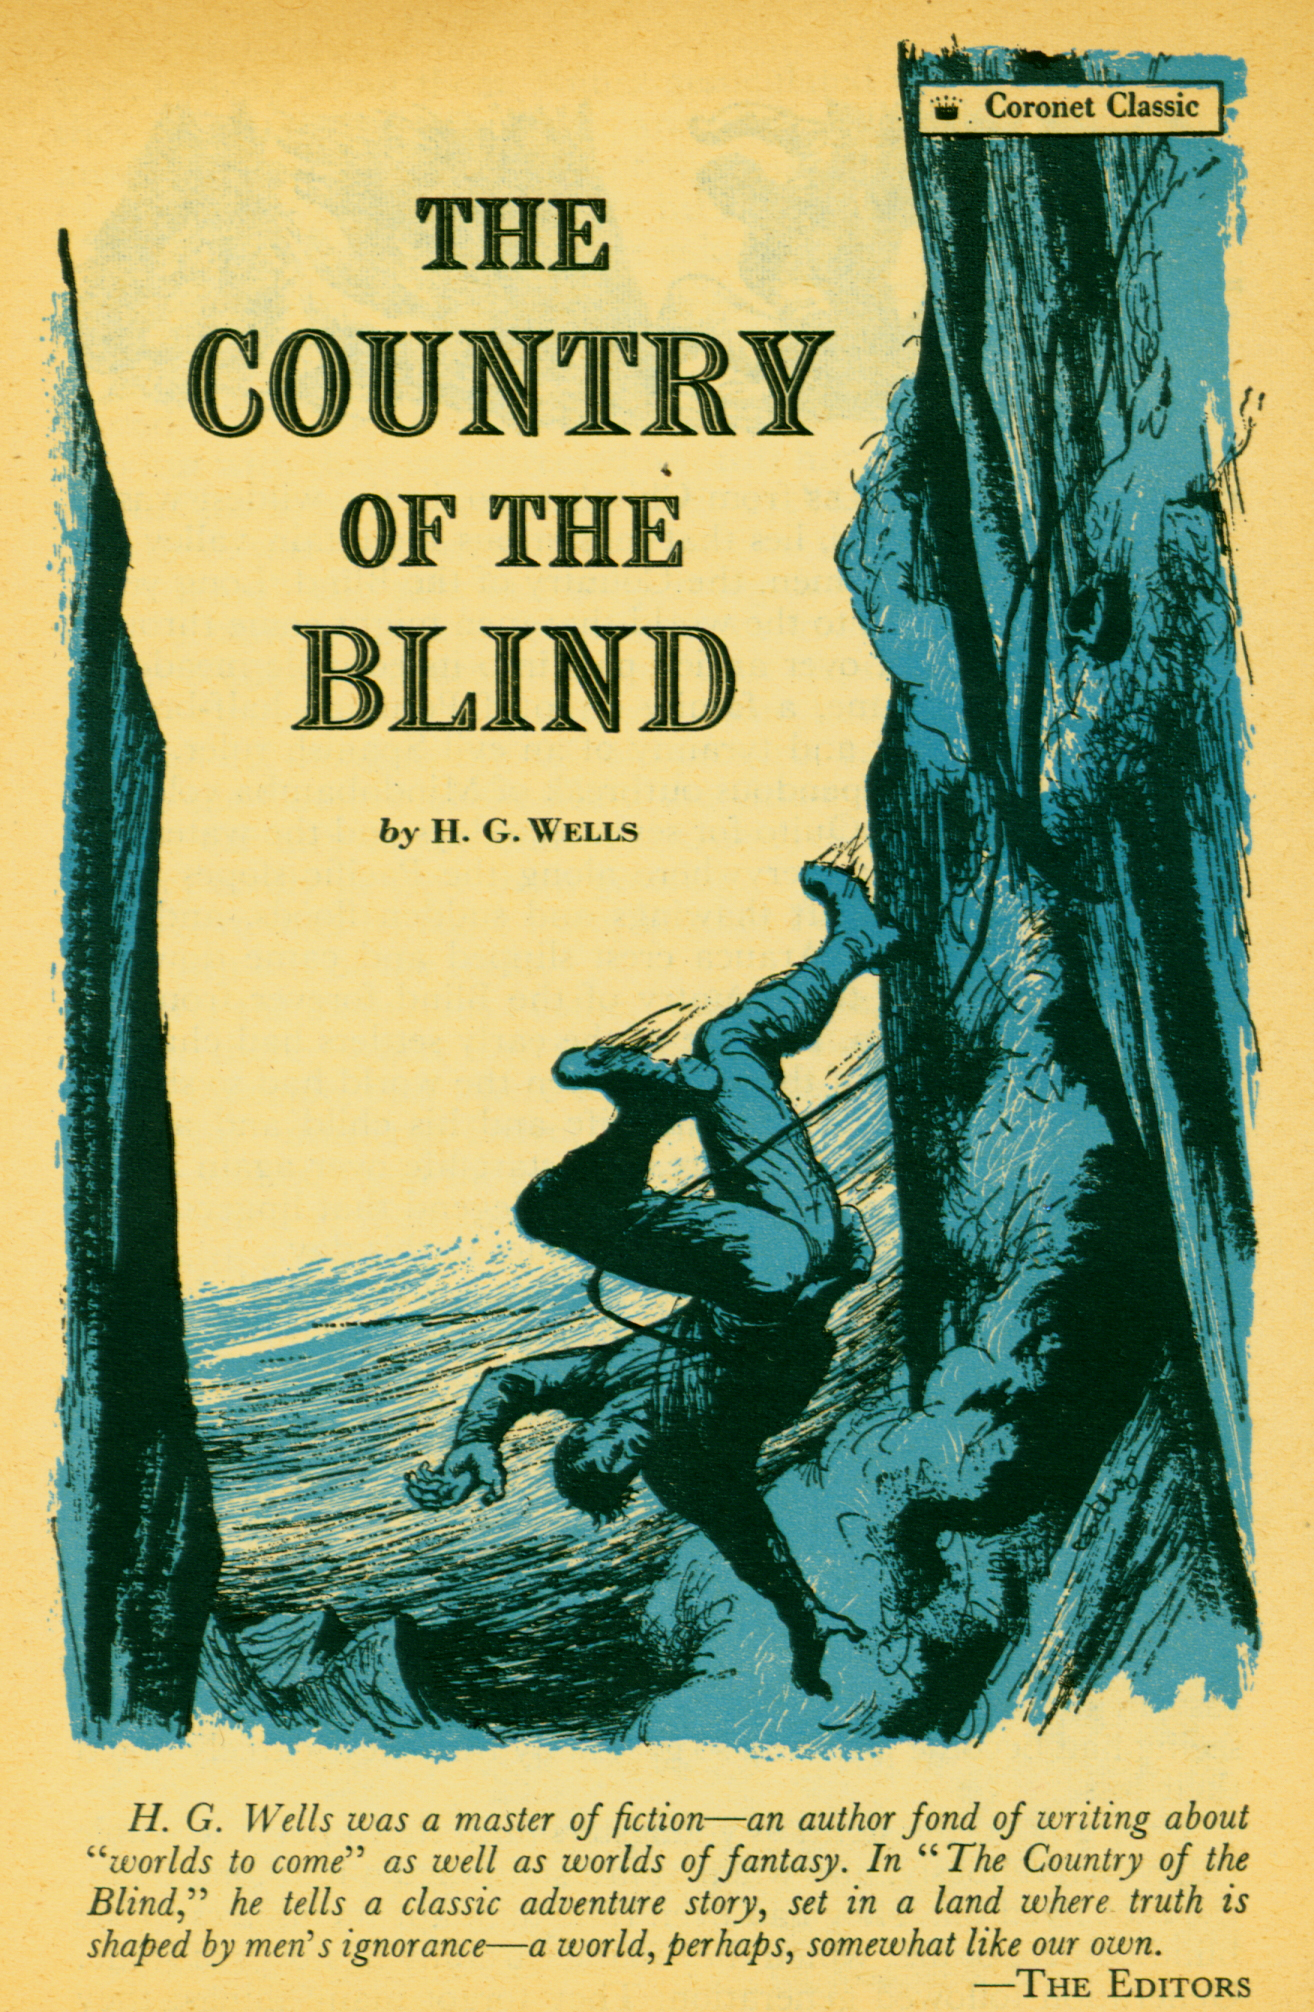 June 1954 - The Country of the Blind